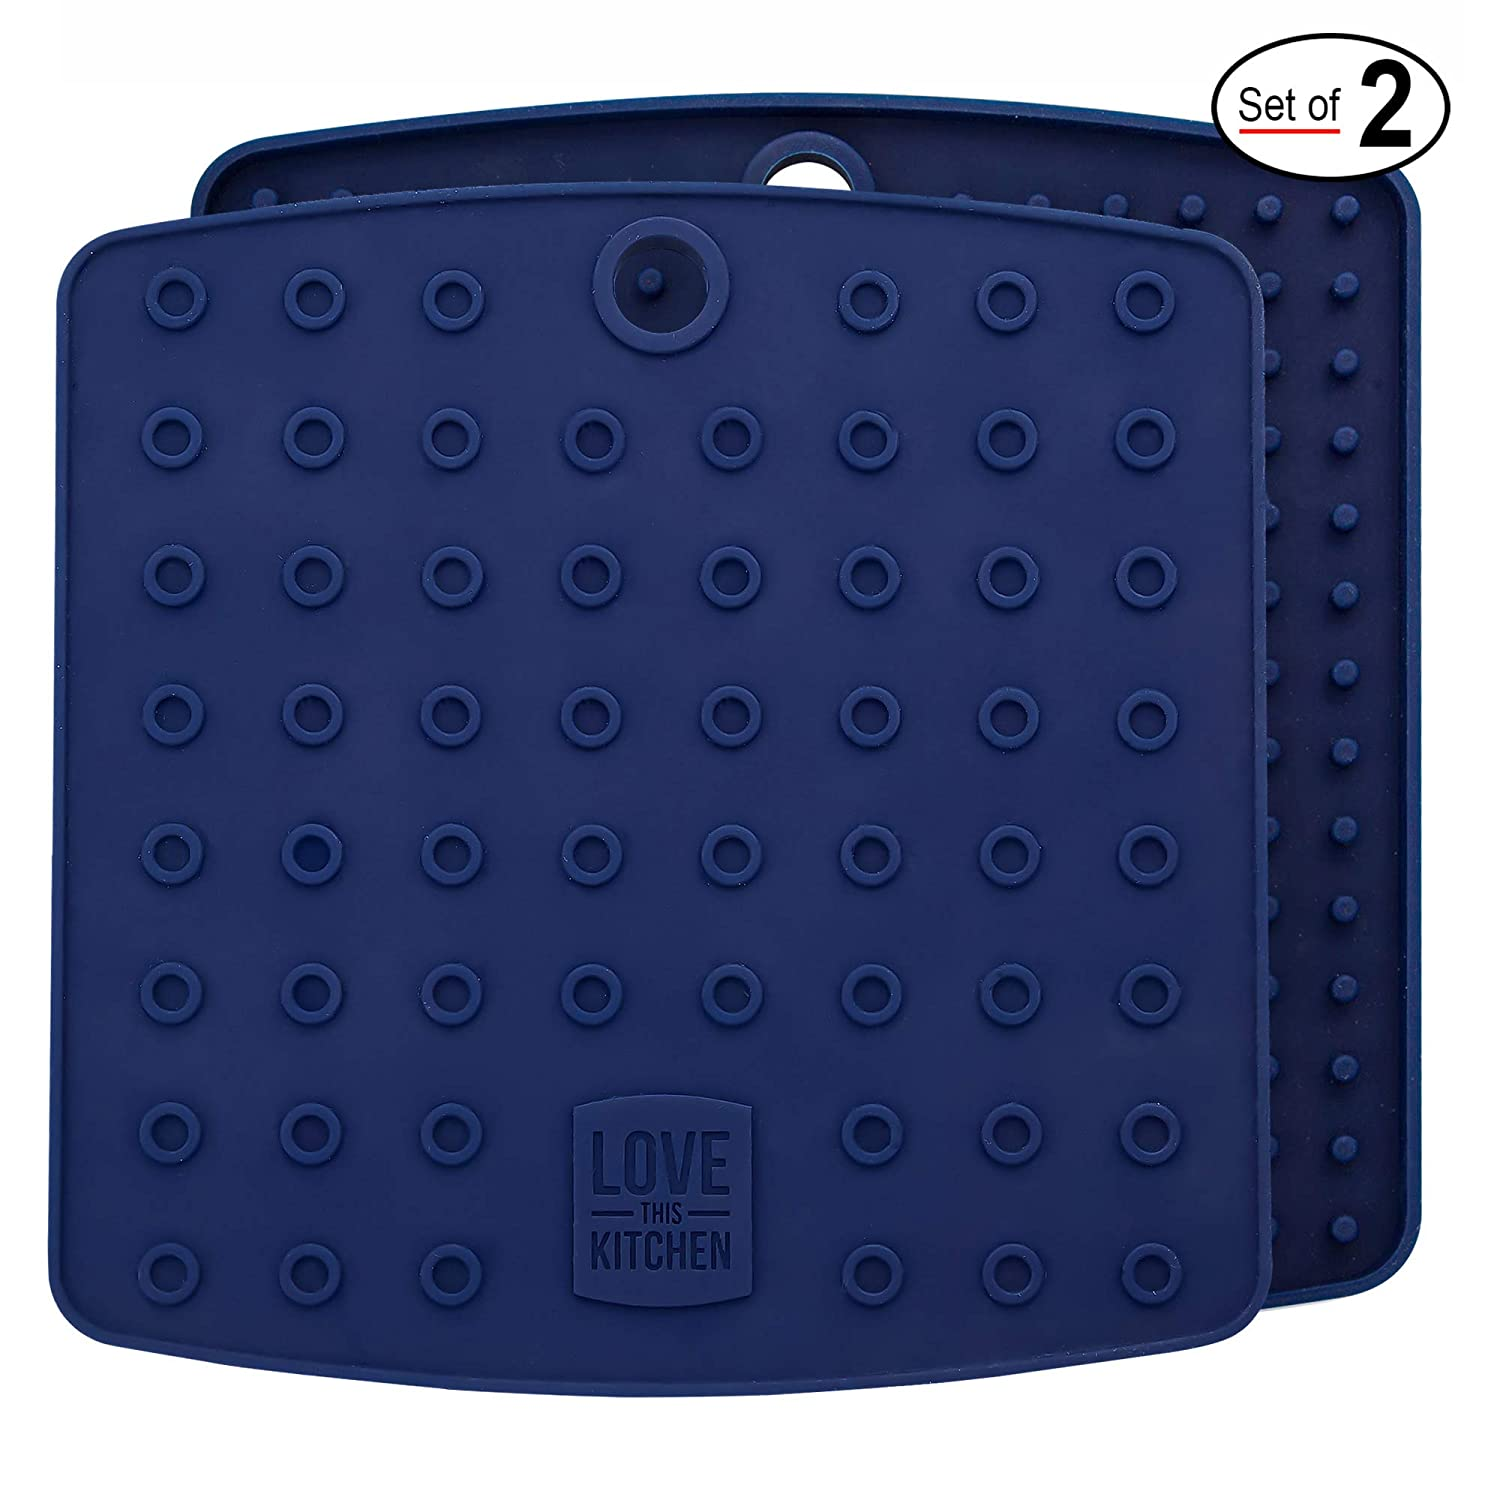 """Premium Silicone Trivet Mats/Hot Pads, Pot Holders, Spoon Rest, Jar Opener & Coasters - Our 5 in 1 Kitchen Tool is Heat Resistant to 442 °F, Thick & Flexible (7"""" x 7"""", Navy Blue, 1 Pair)"""